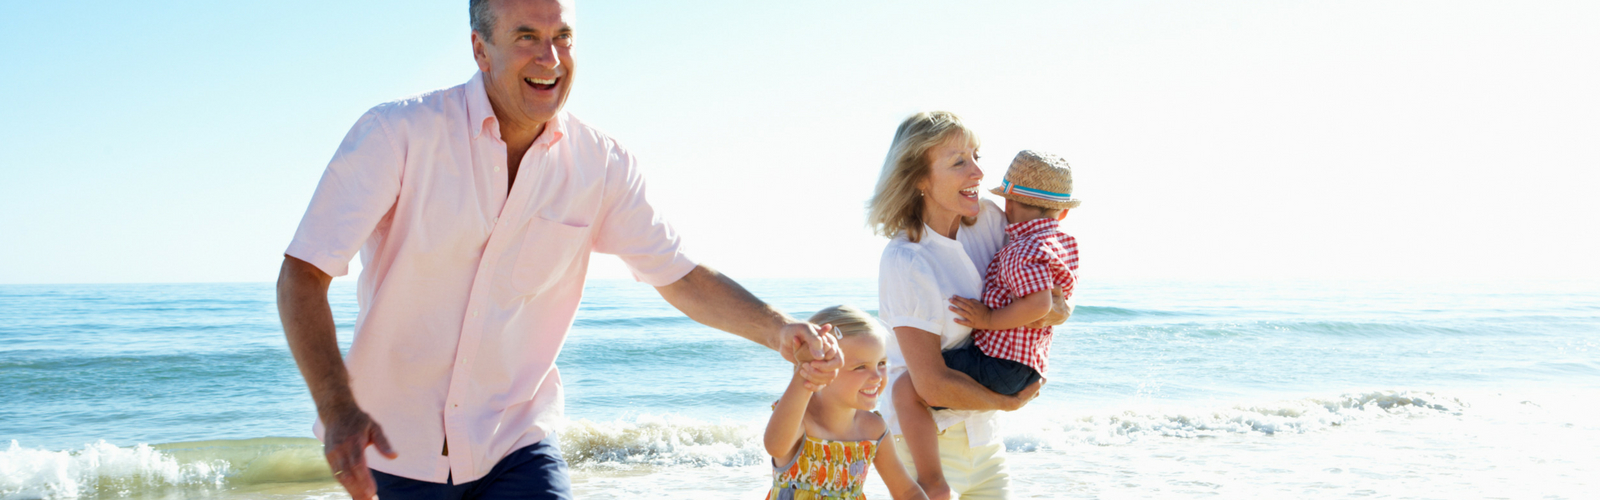 Top Places to Spend Time with Family on the Treasure Coast